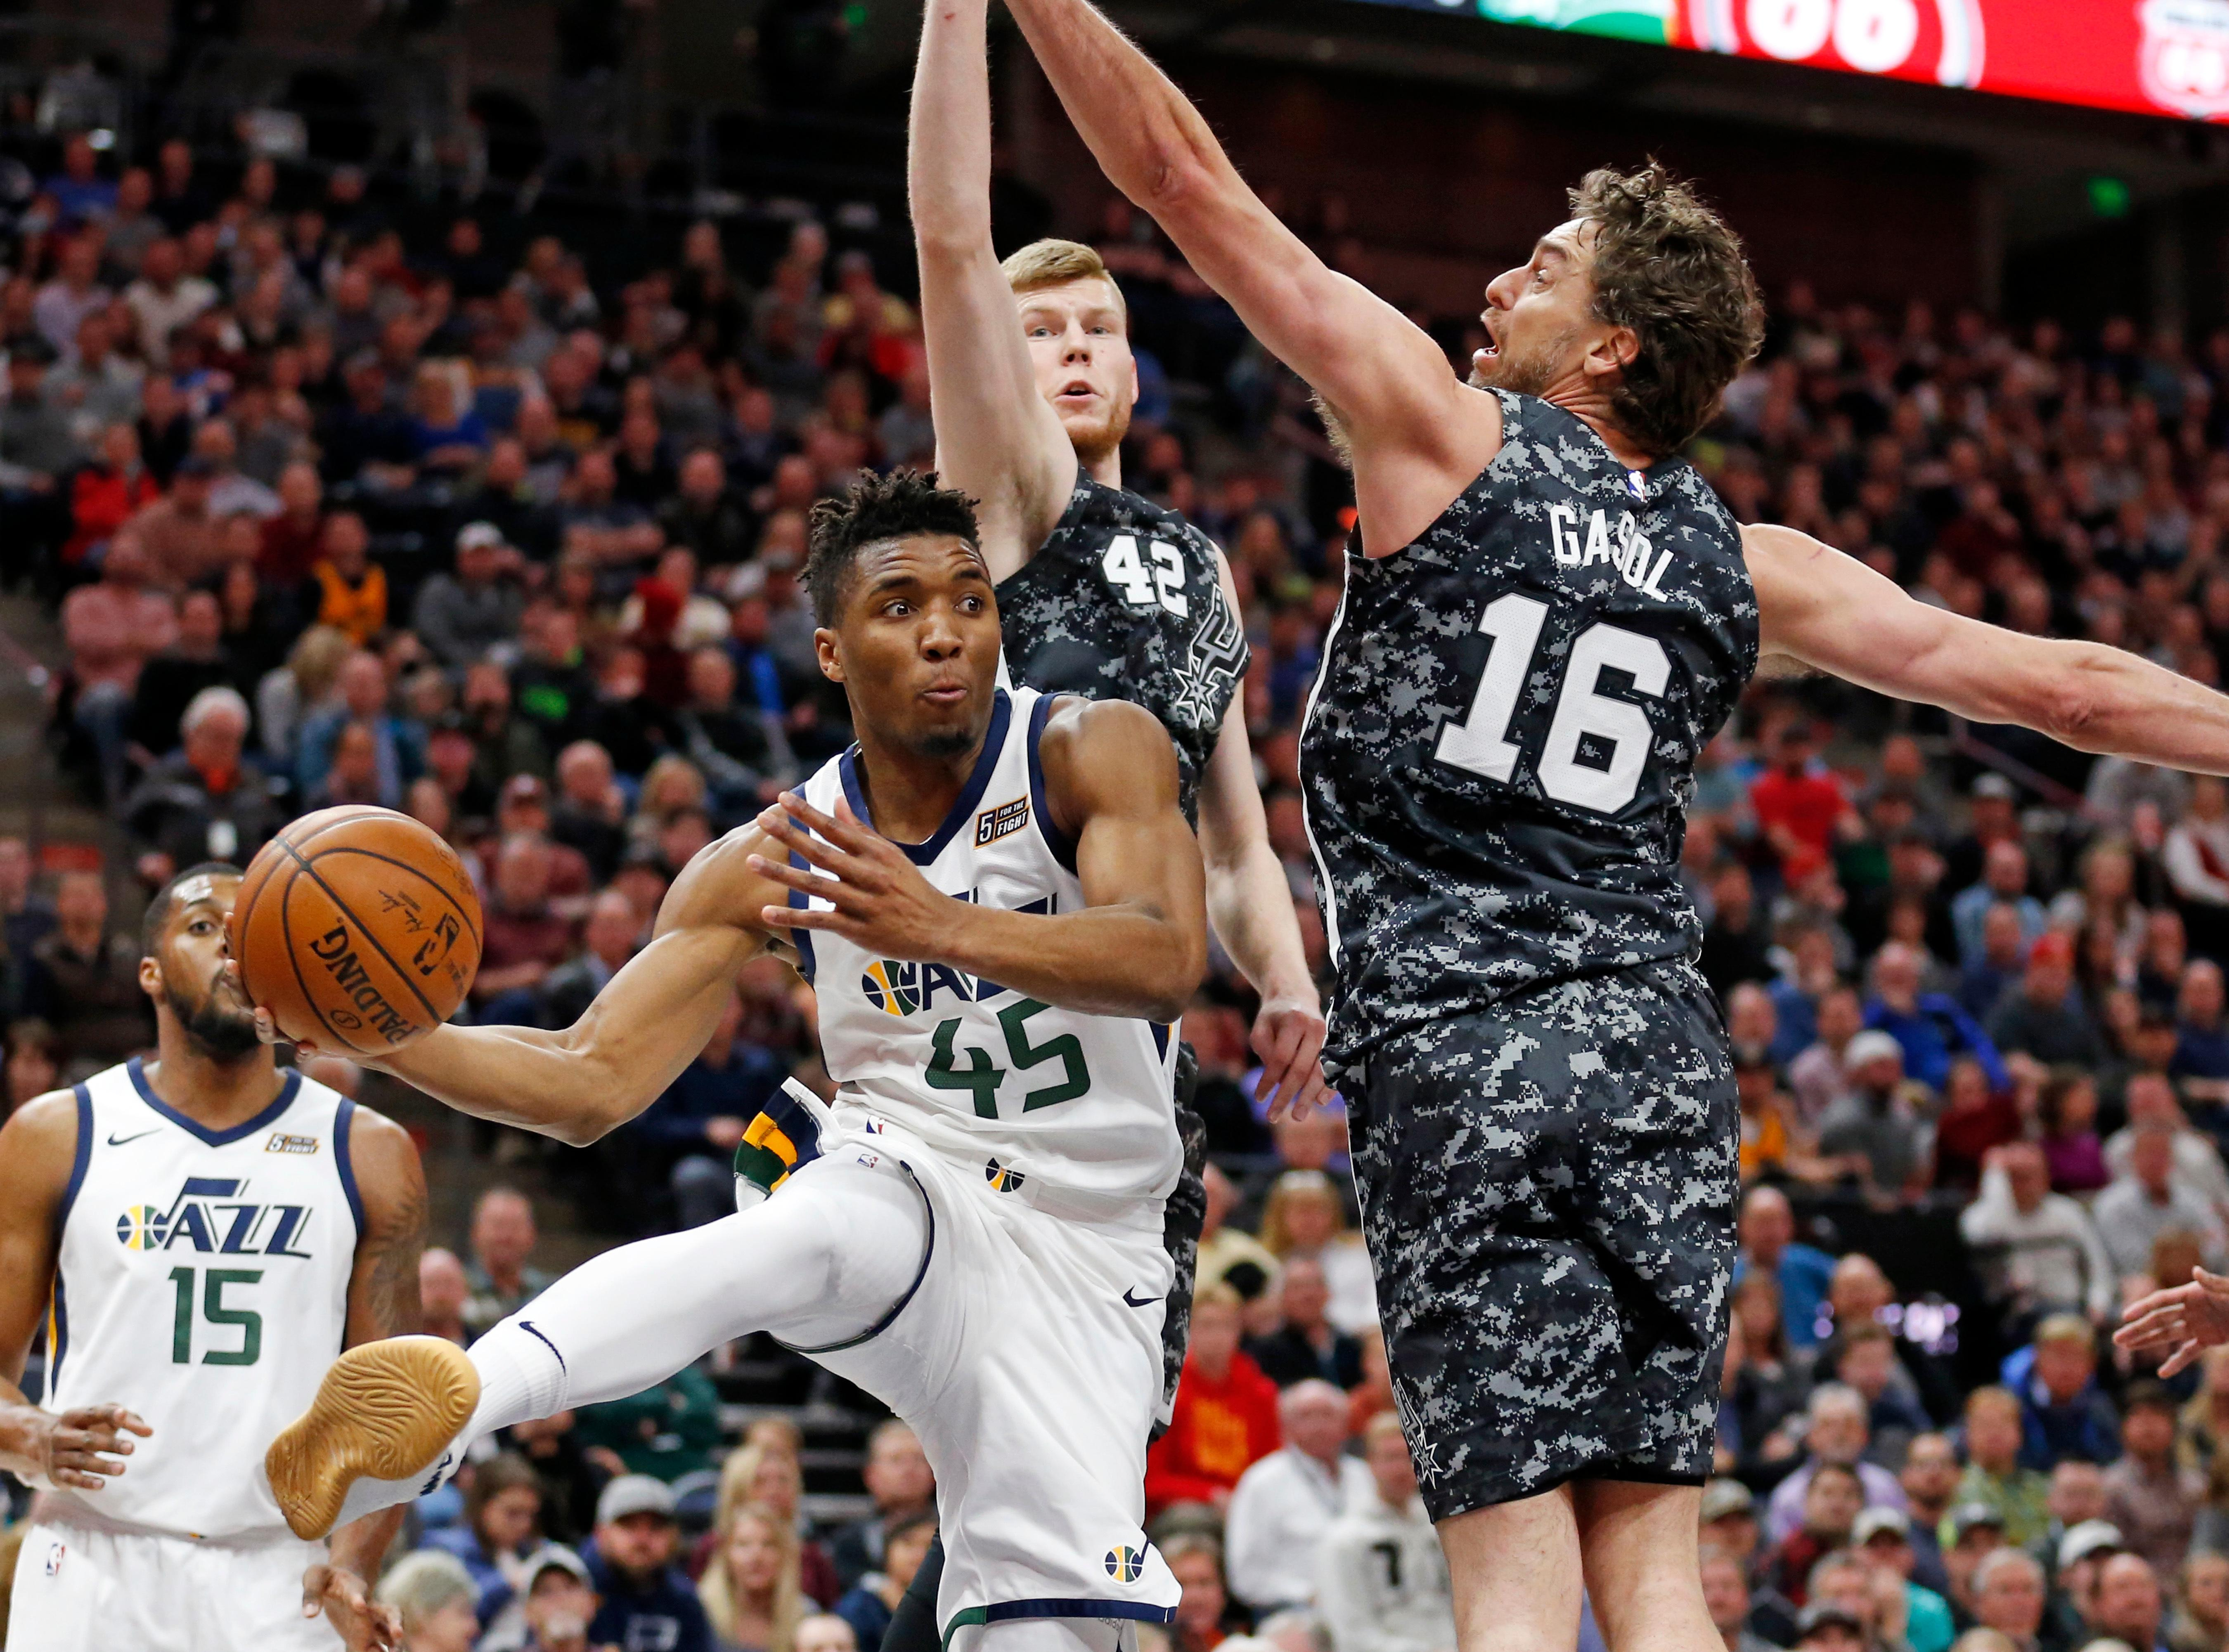 San Antonio Spurs' Davis Bertans (42) and Pau Gasol (16) defend against Utah Jazz guard Donovan Mitchell (45) in the first half of an NBA basketball game Monday, Feb. 12, 2018, in Salt Lake City. (AP Photo/Rick Bowmer)